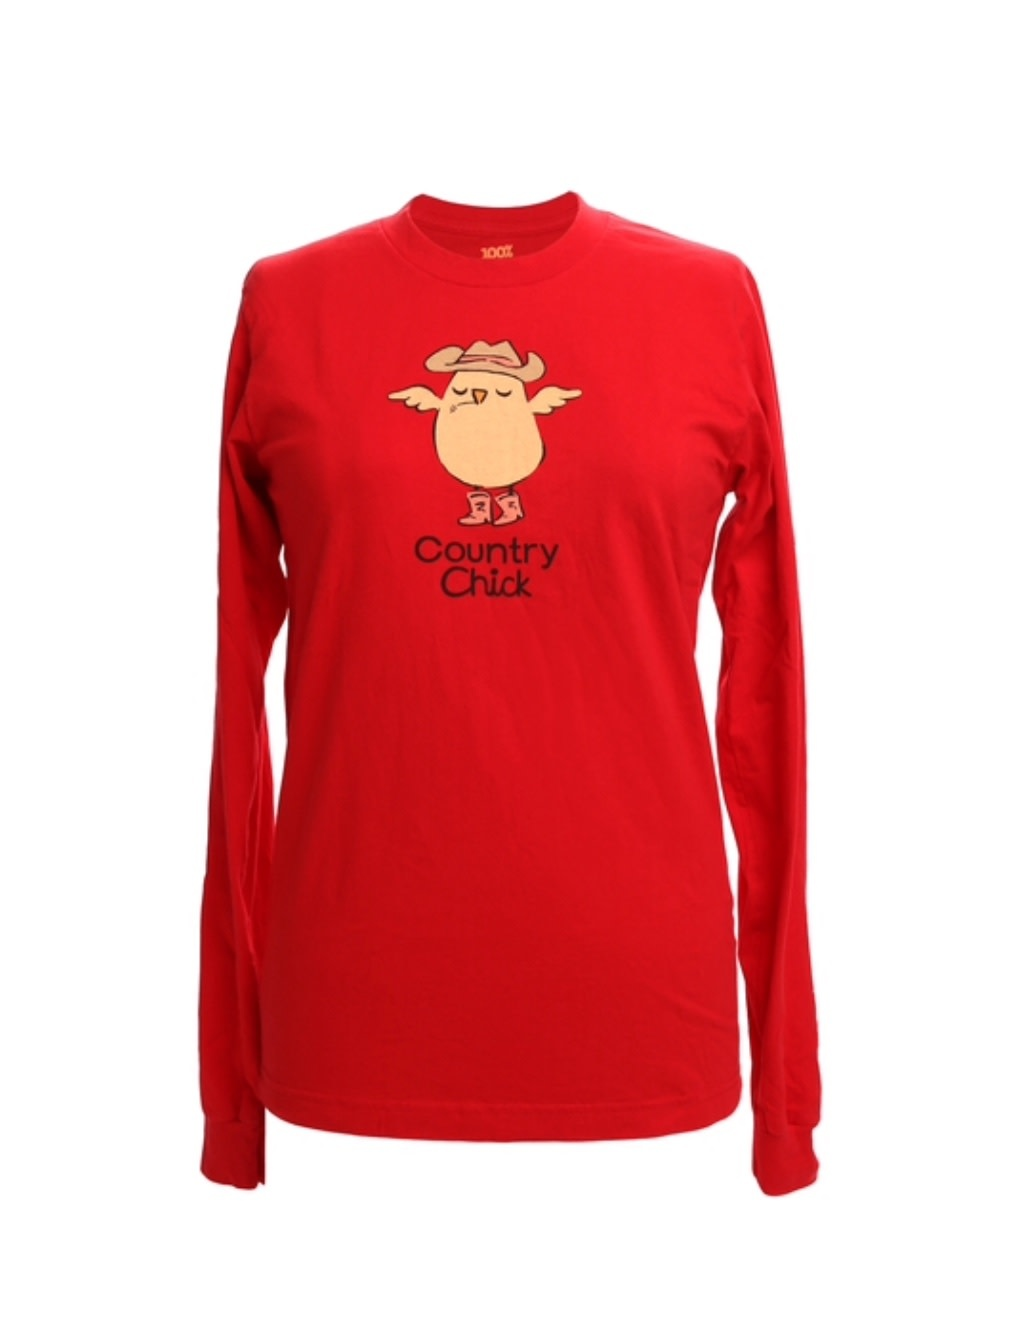 Country Chick LS